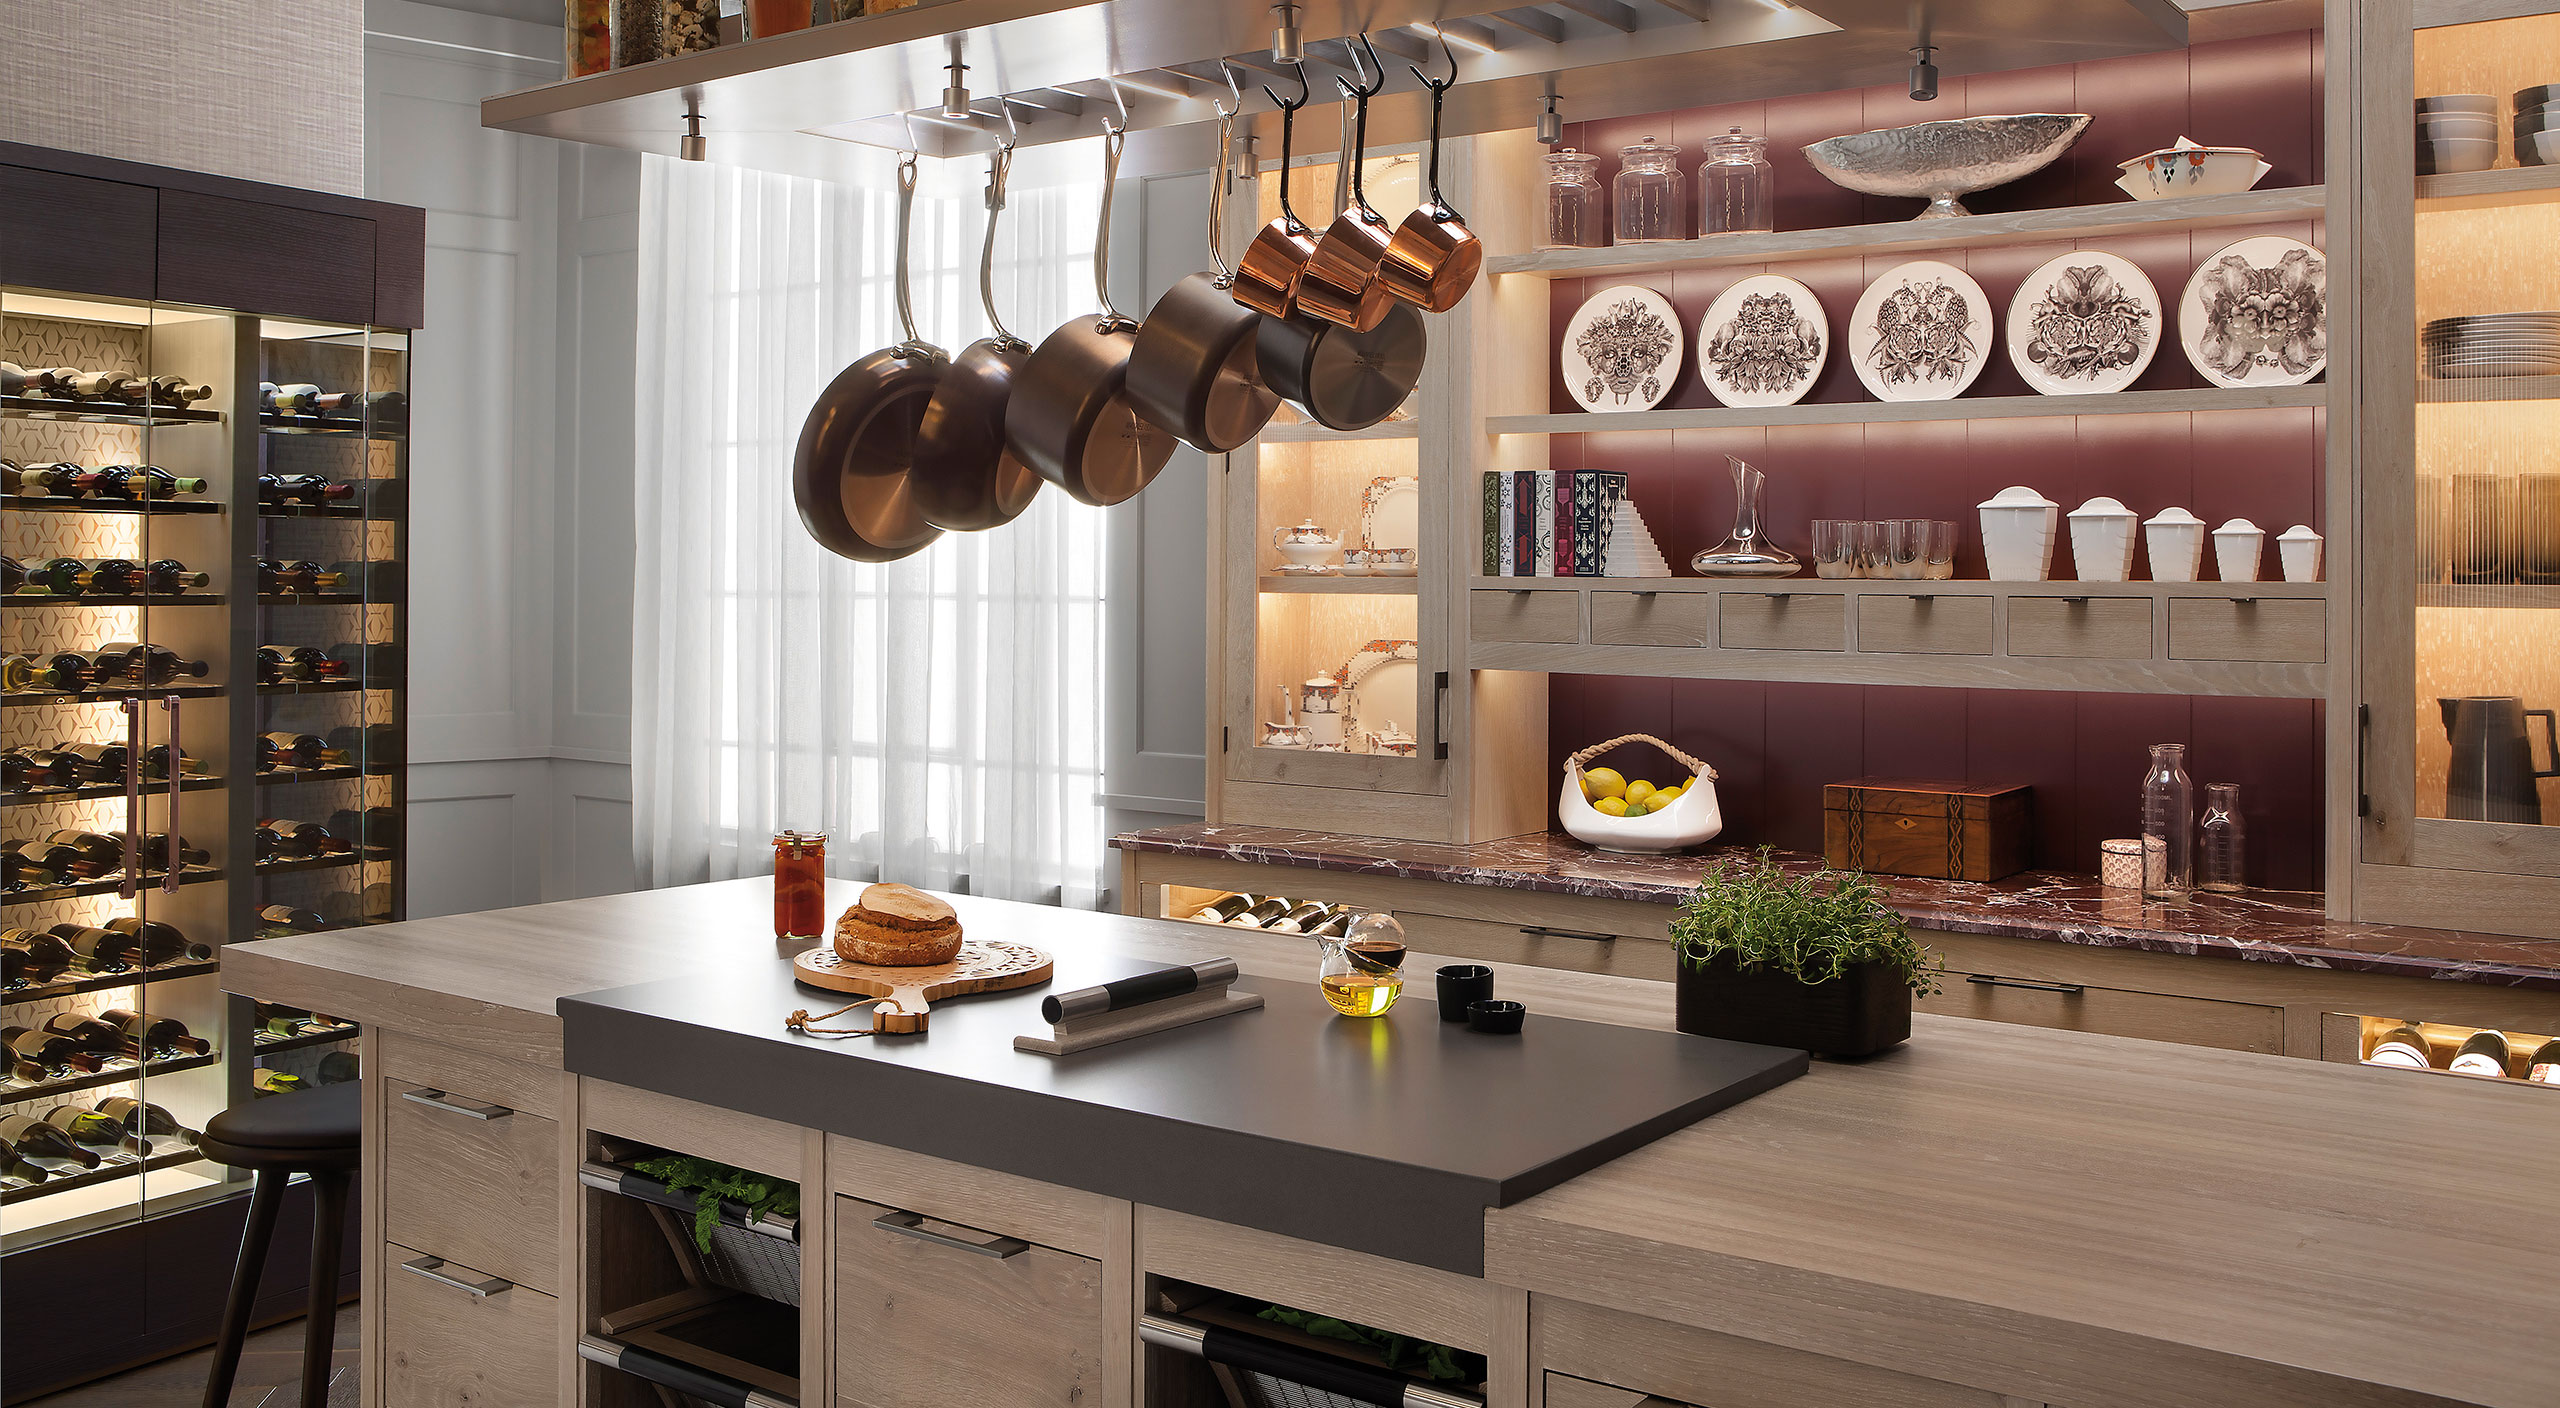 A Brasserie kitchen by Smallbone with bespoke wine wall